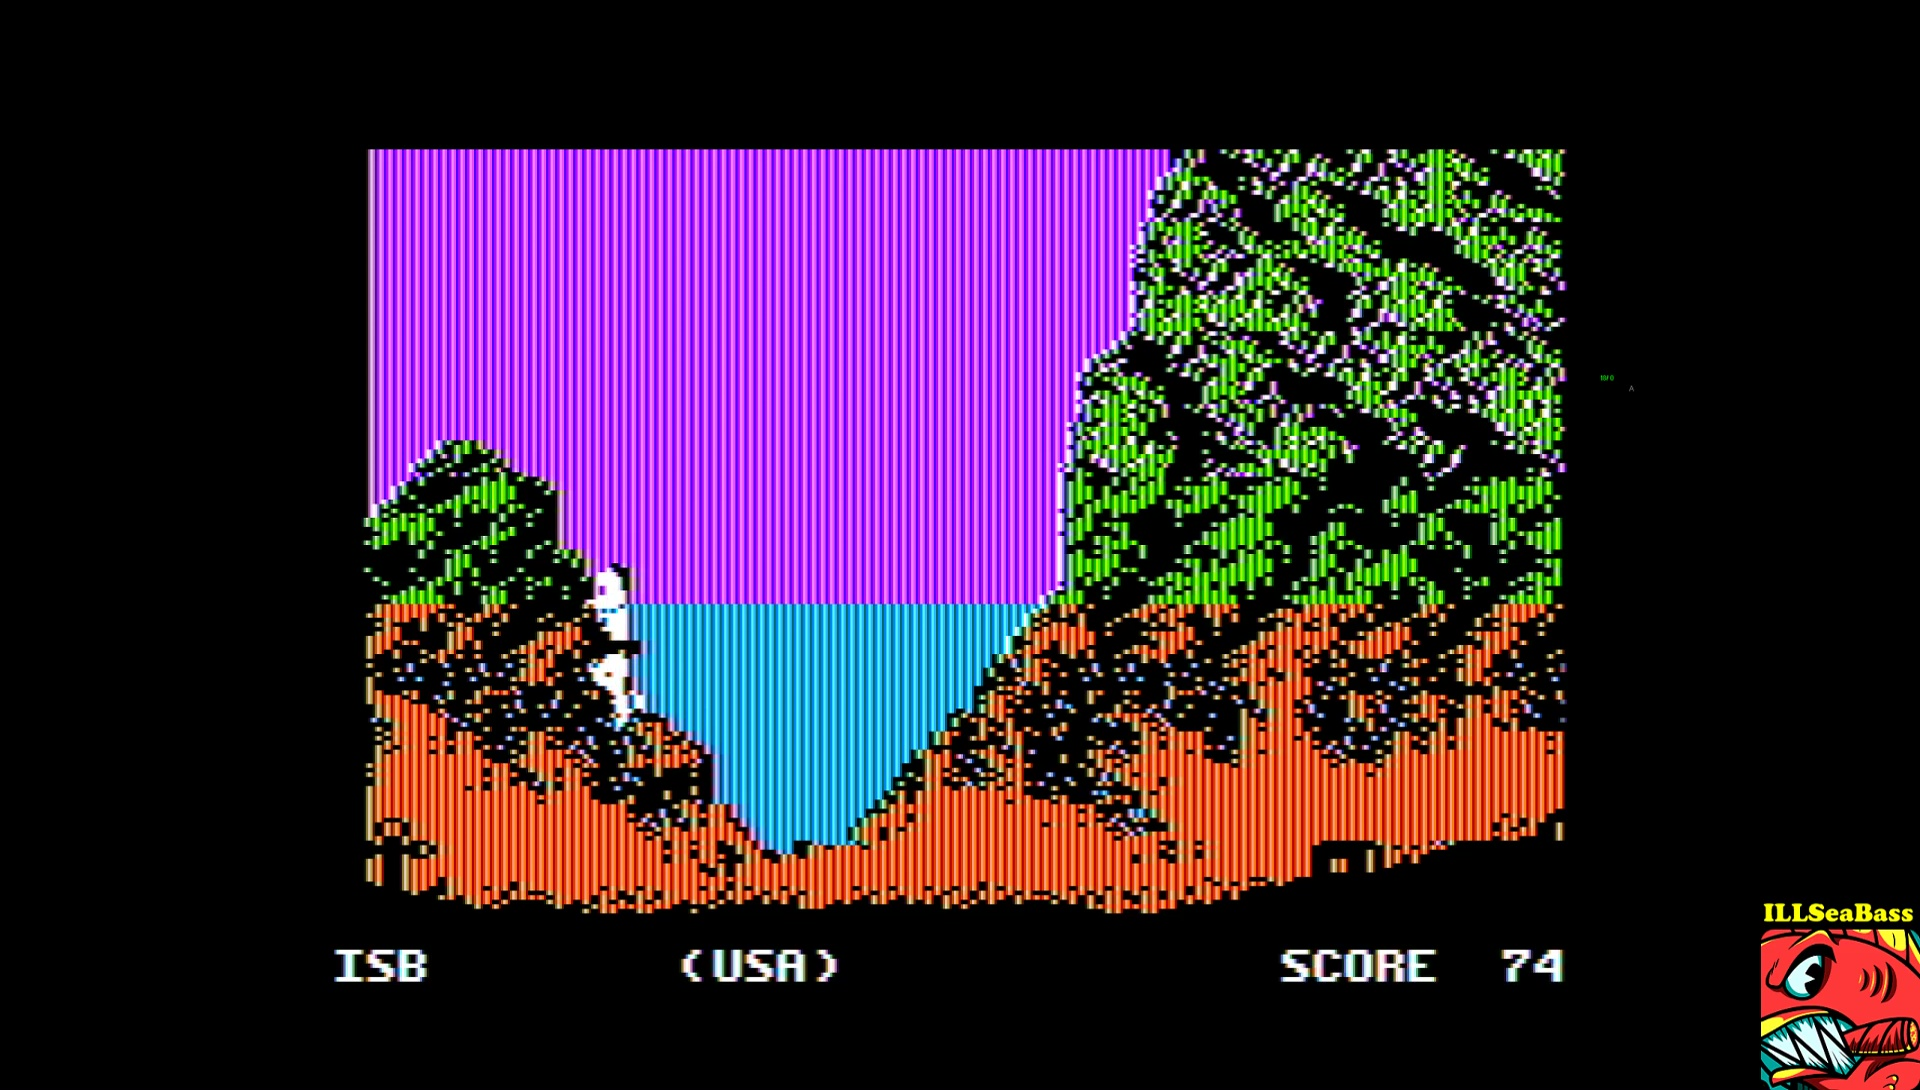 ILLSeaBass: World Games: Cliff Diving (Apple II Emulated) 74 points on 2017-03-26 14:38:52